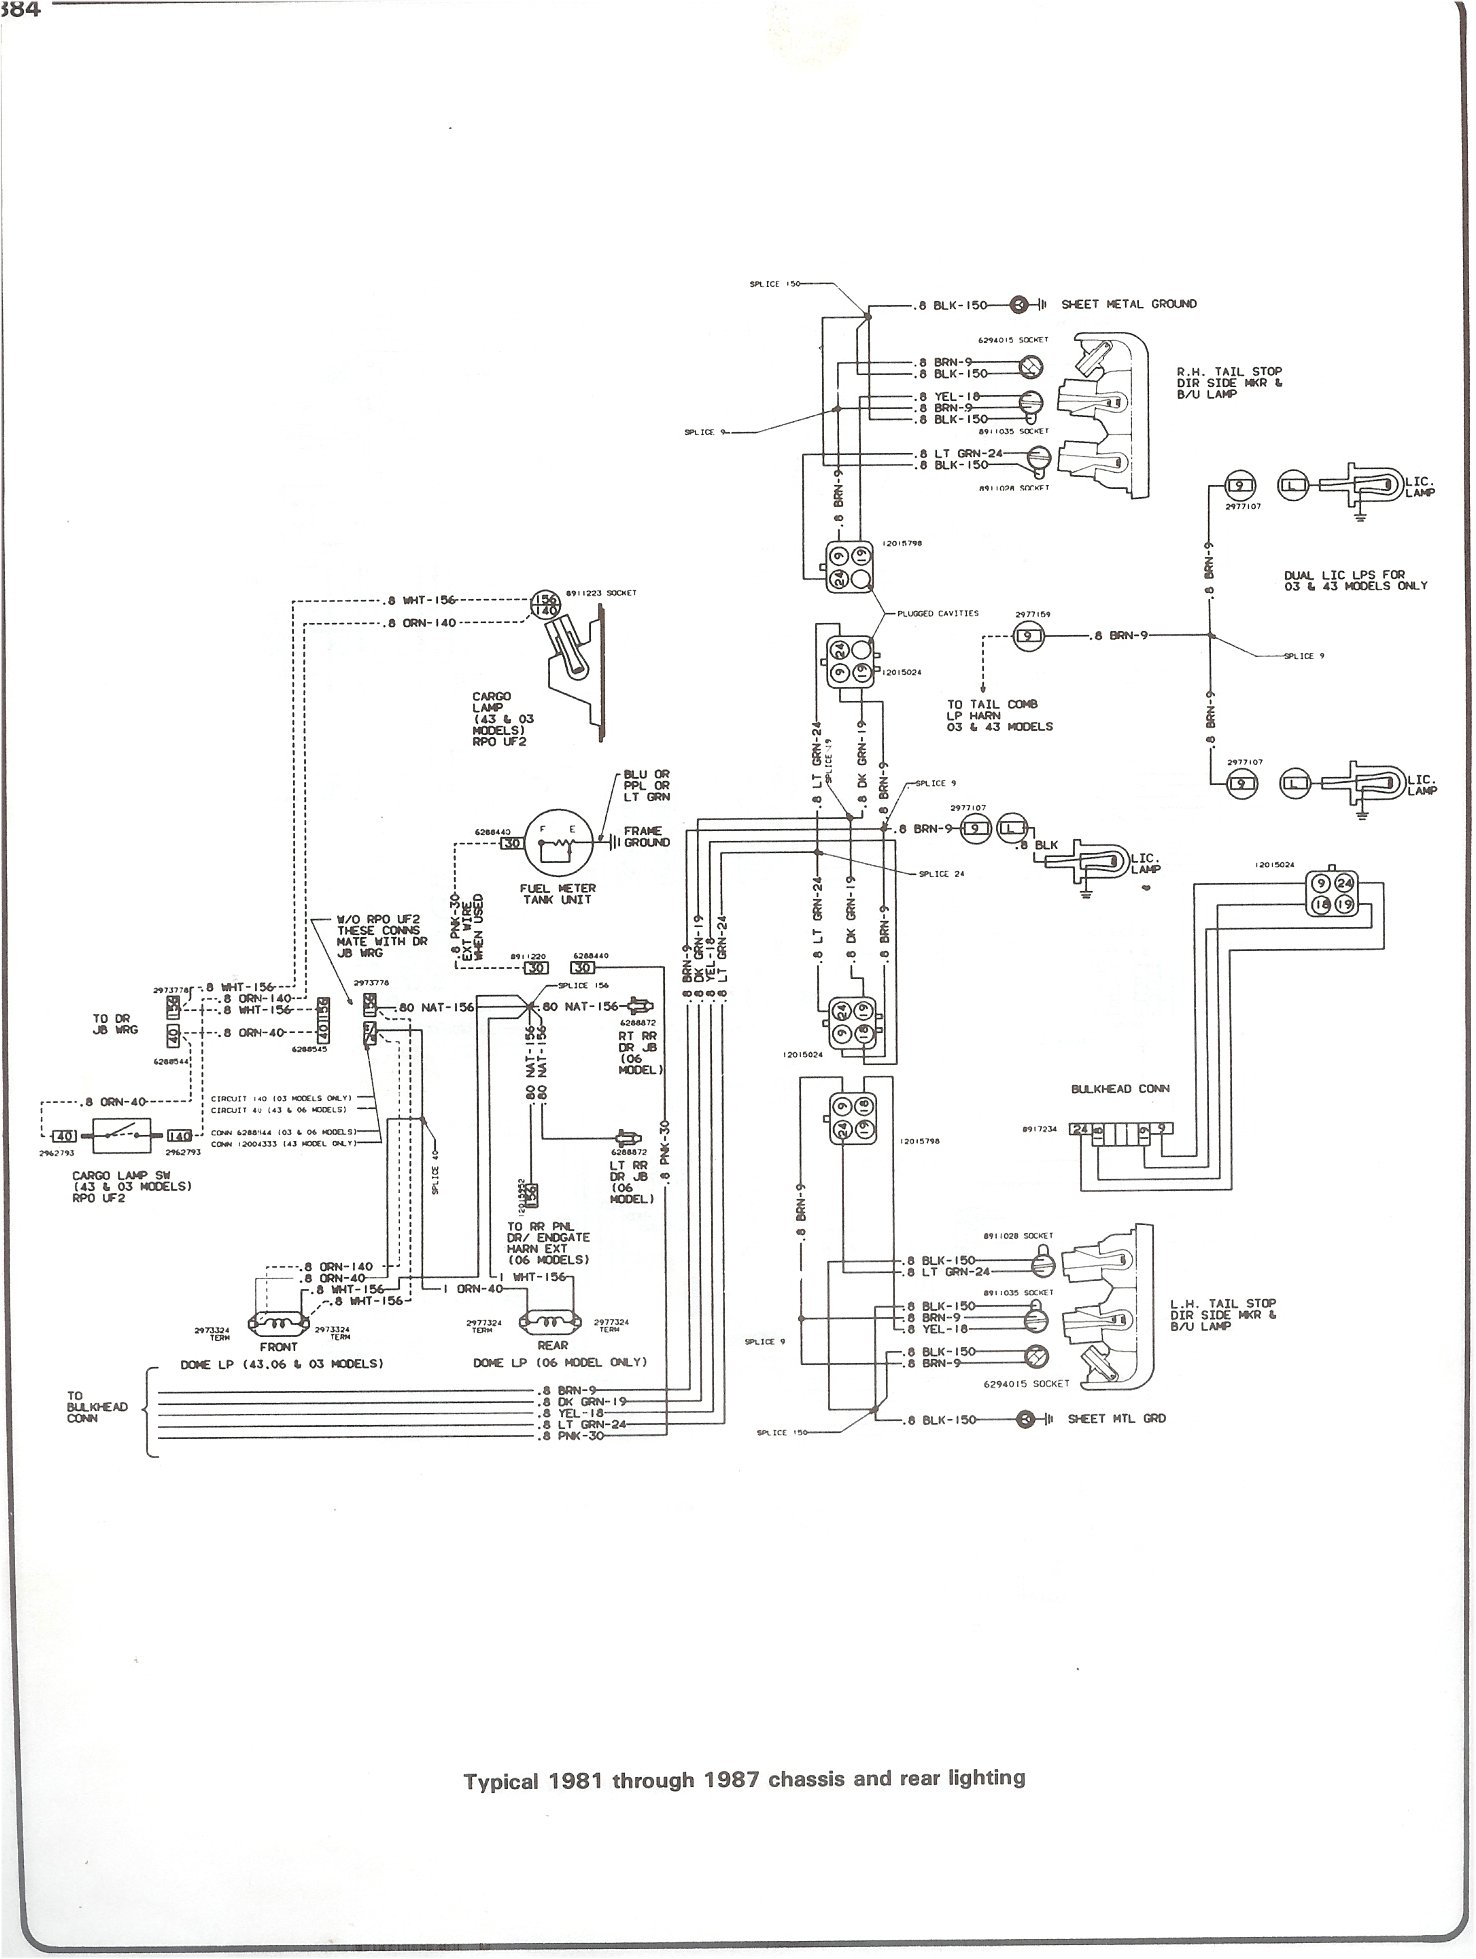 81 87_chass_rr_light complete 73 87 wiring diagrams Chevy Wiring Harness Diagram at nearapp.co